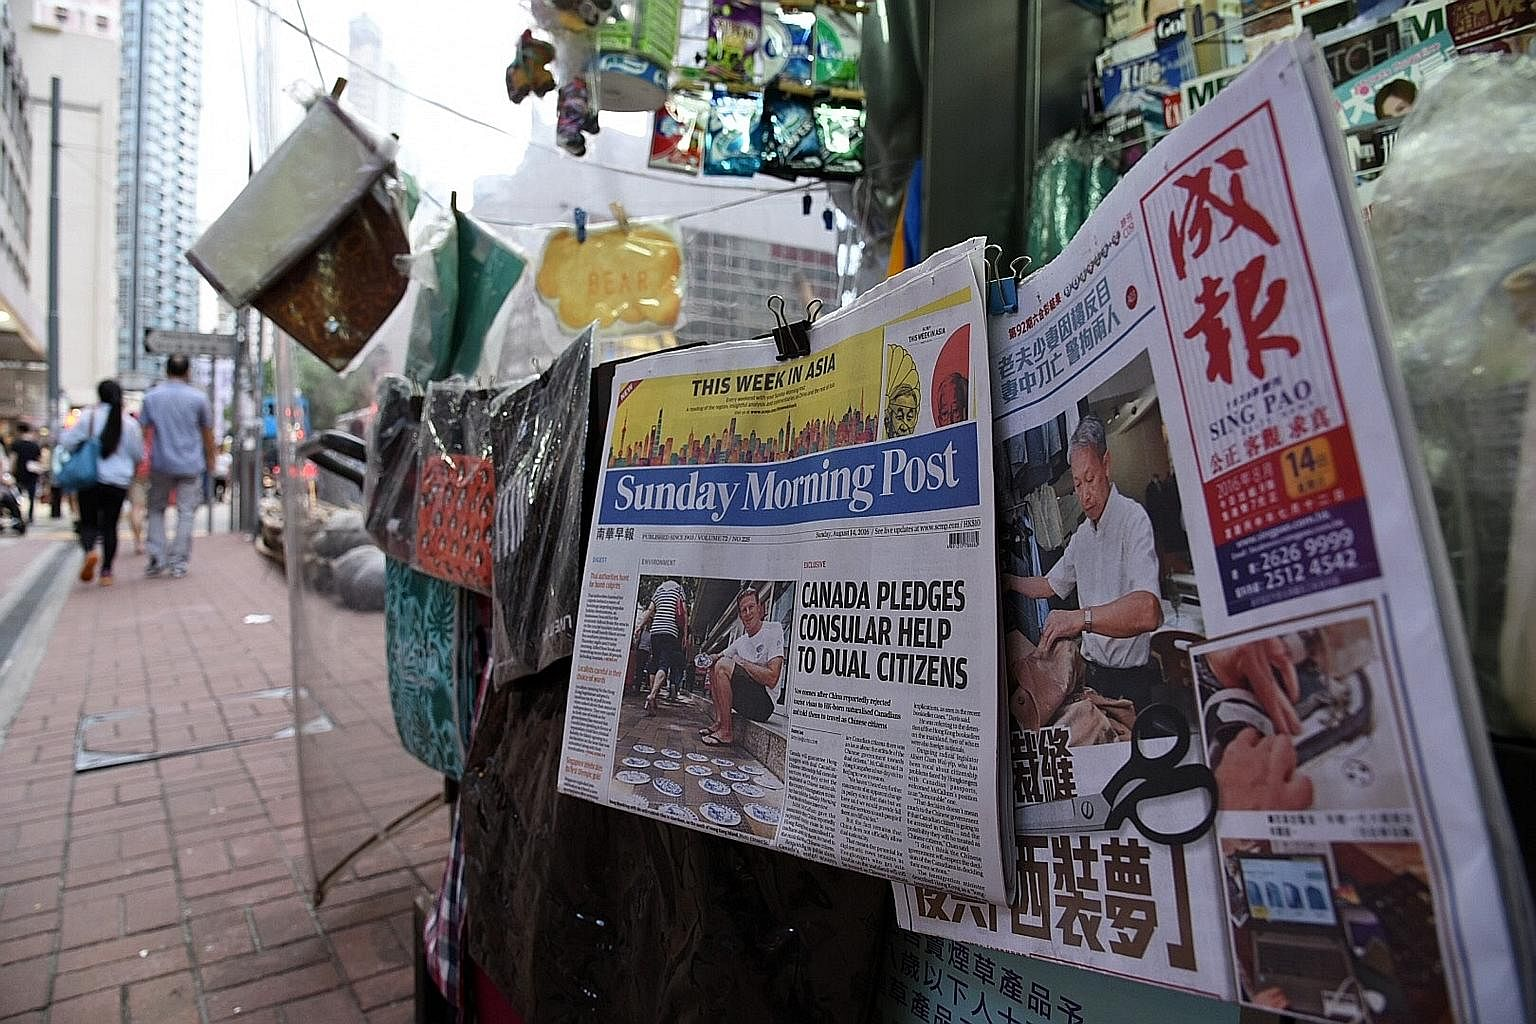 Since Hong Kong returned to Chinese rule in 1997, there have been fears that Beijing would try to suppress press freedom in the city.